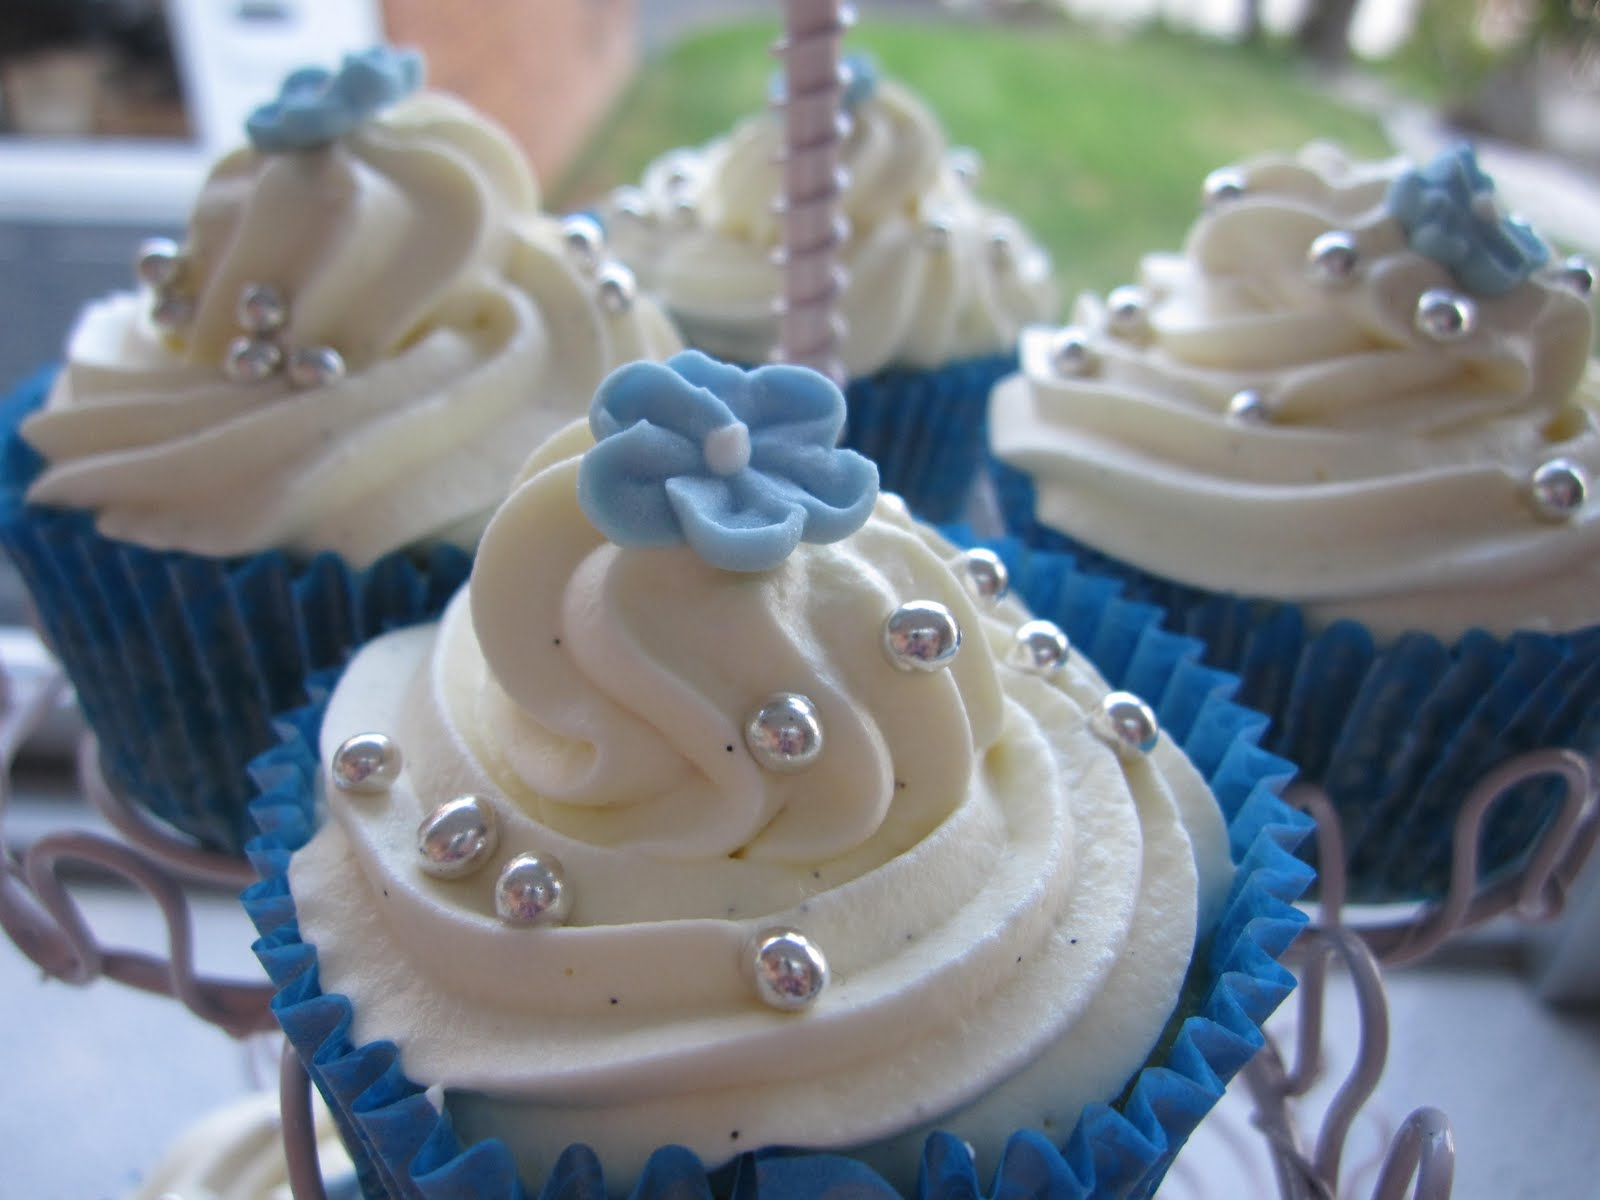 Wee Treats By Tammy Cupcakes At Last